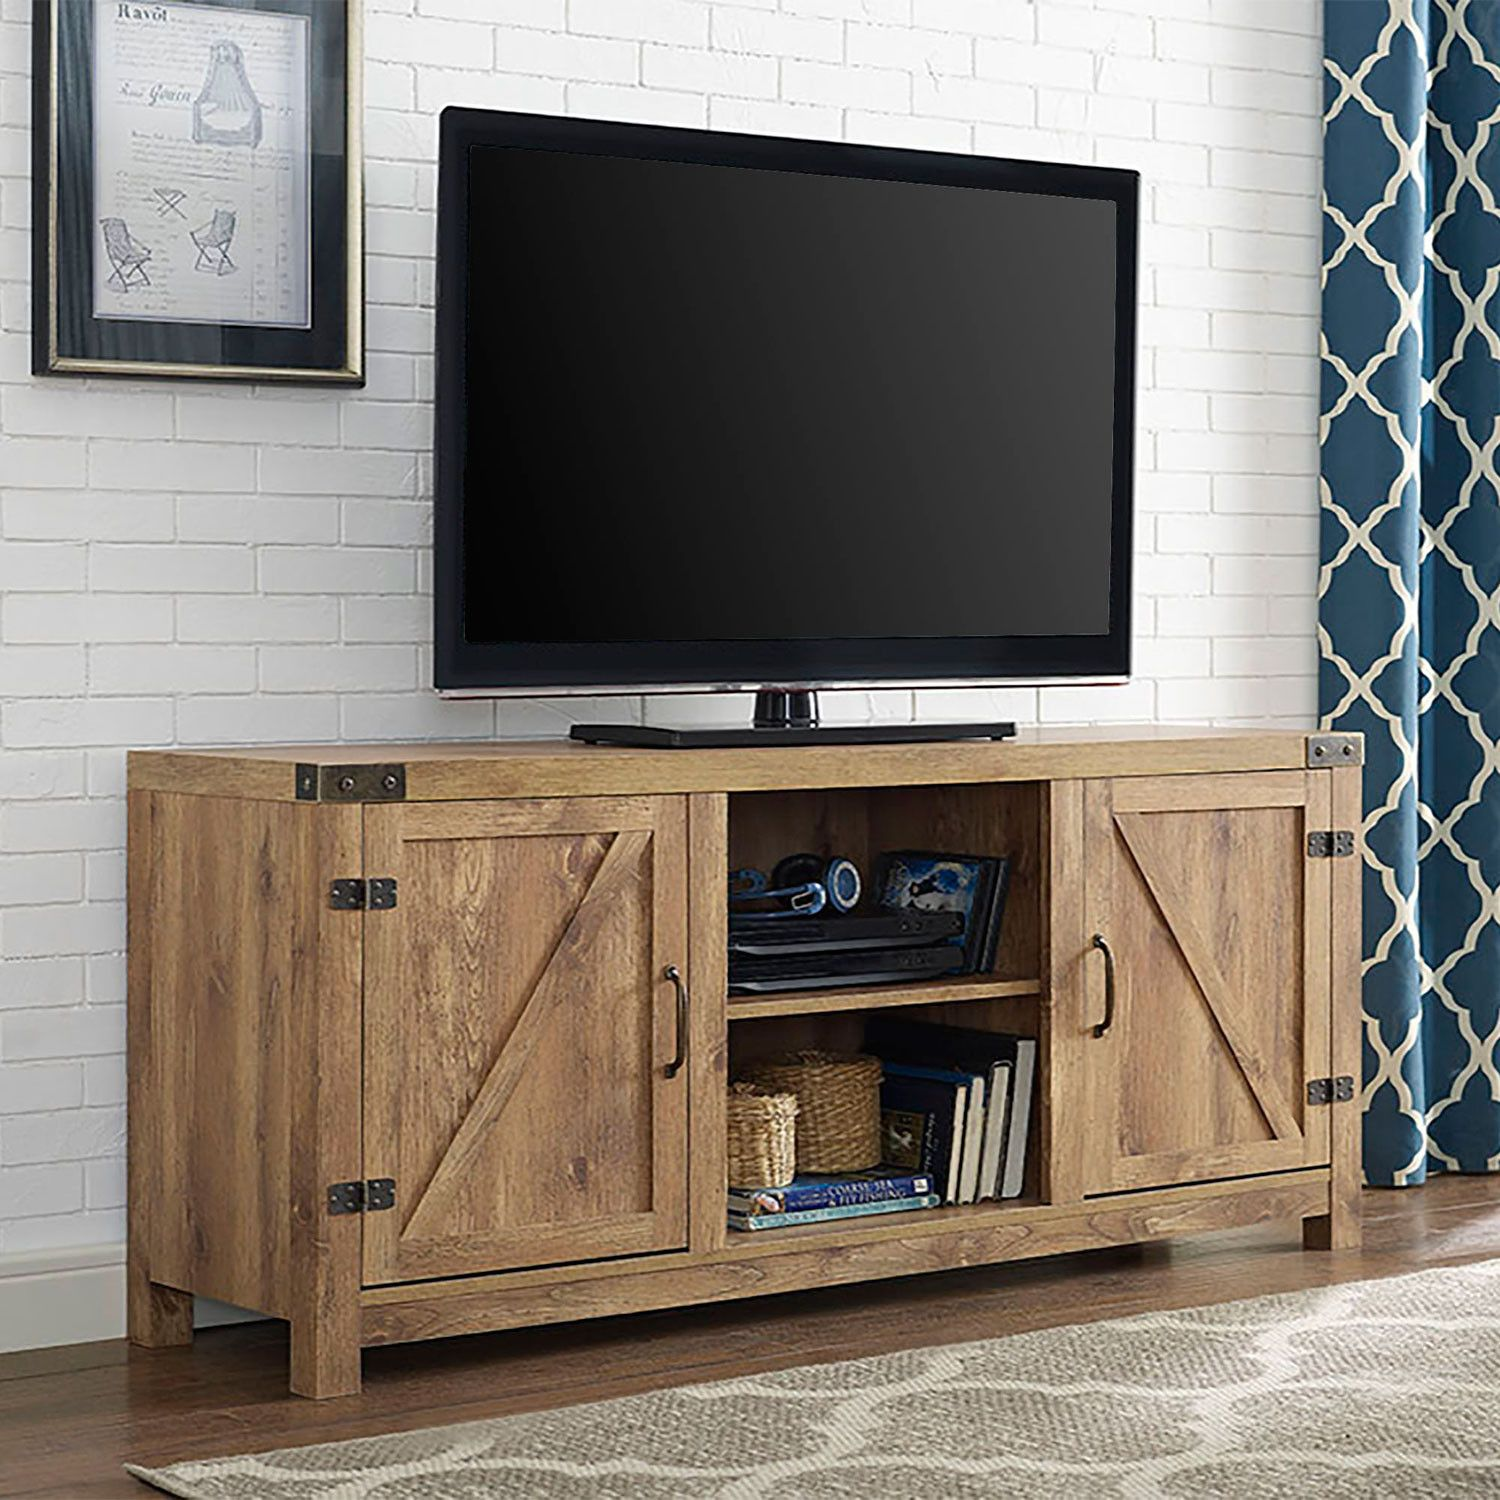 2018 Television Cabinets for Sale Kitchen Floor Vinyl Ideas Check